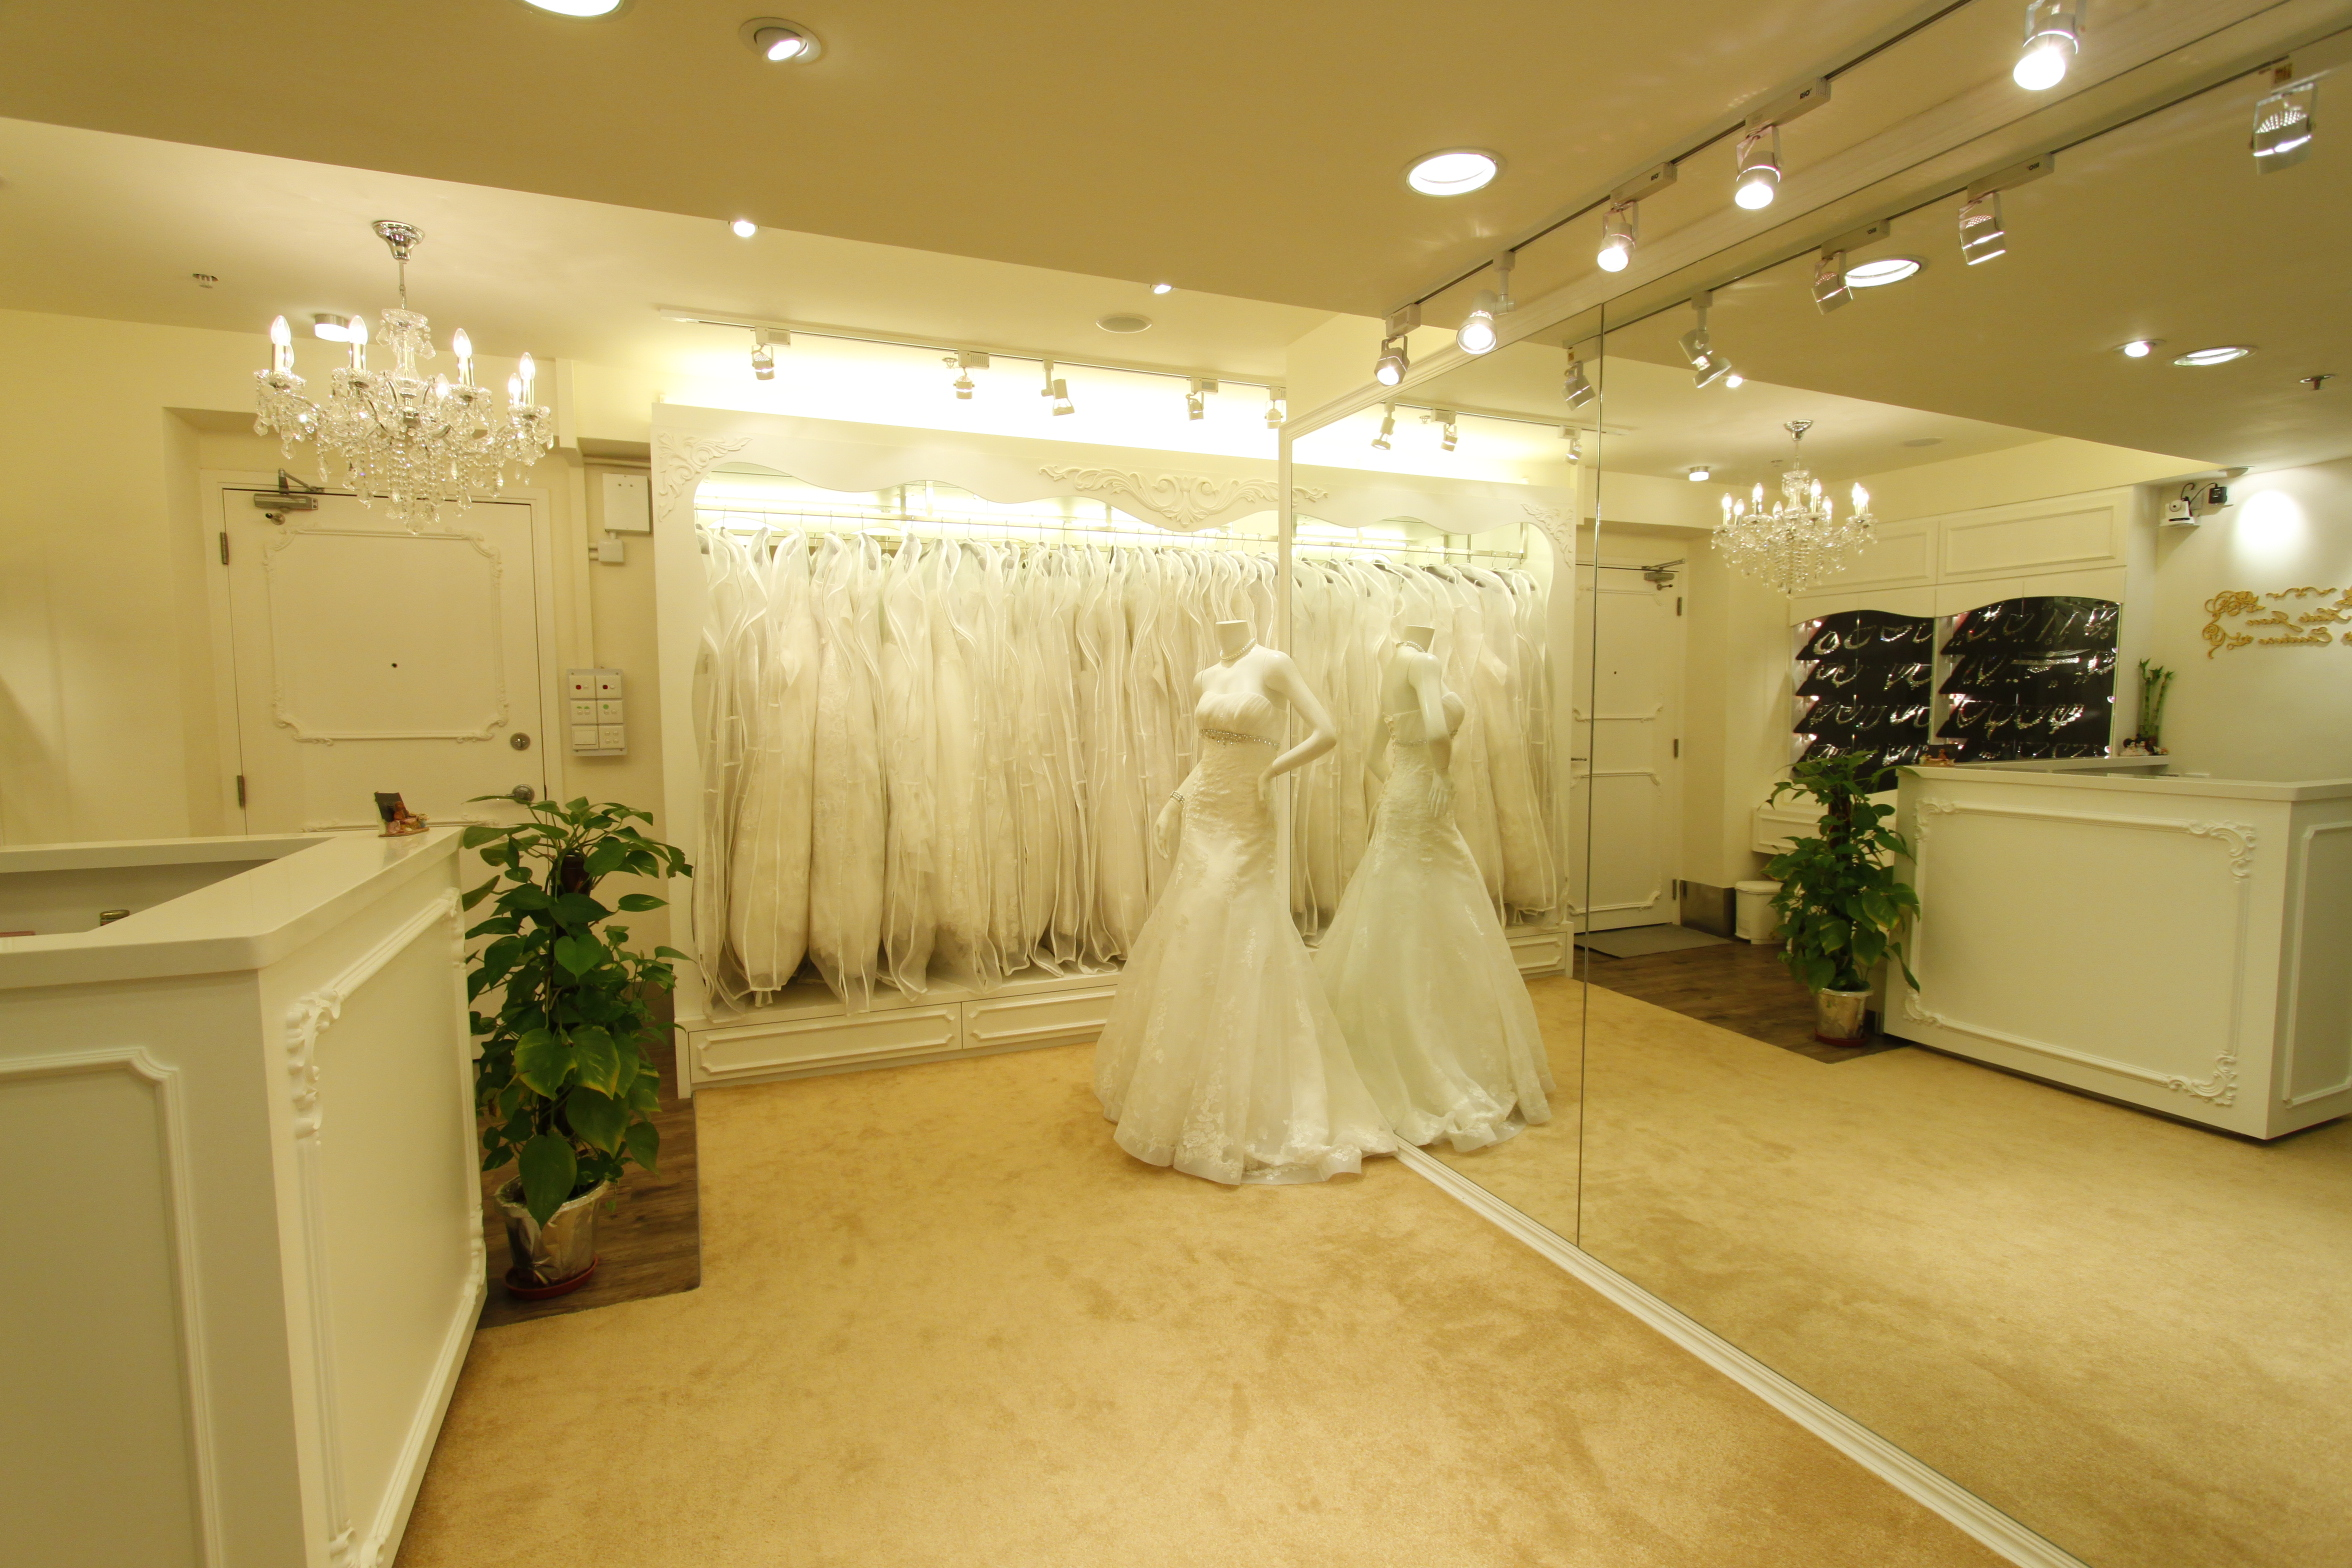 Kate jean couture couture shop providing exclusive designer wedding gowns and dresses for special occasions since 2008 kate jean has been serving brides in hong kong junglespirit Choice Image